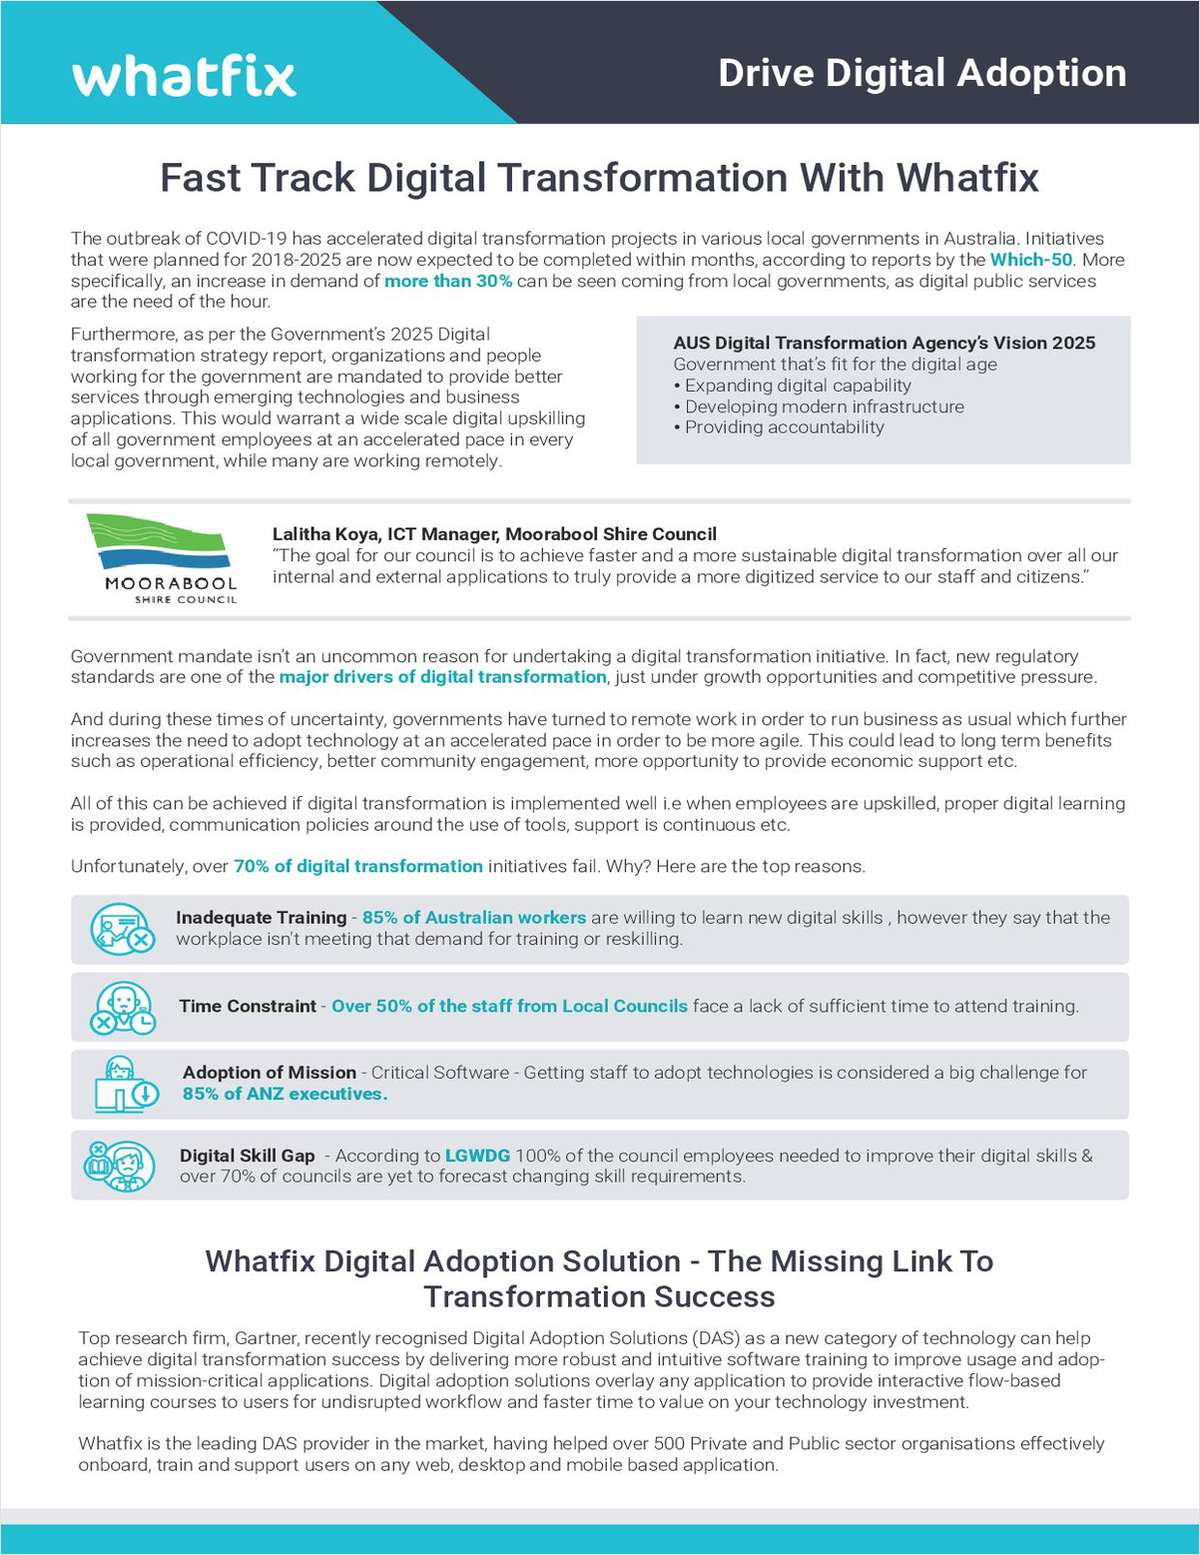 Is Your Local Council Missing The Mark On Digital Transformation? Download Our Short Paper To Find Out Why, And How You Can Course Correct Quickly With Whatfix.